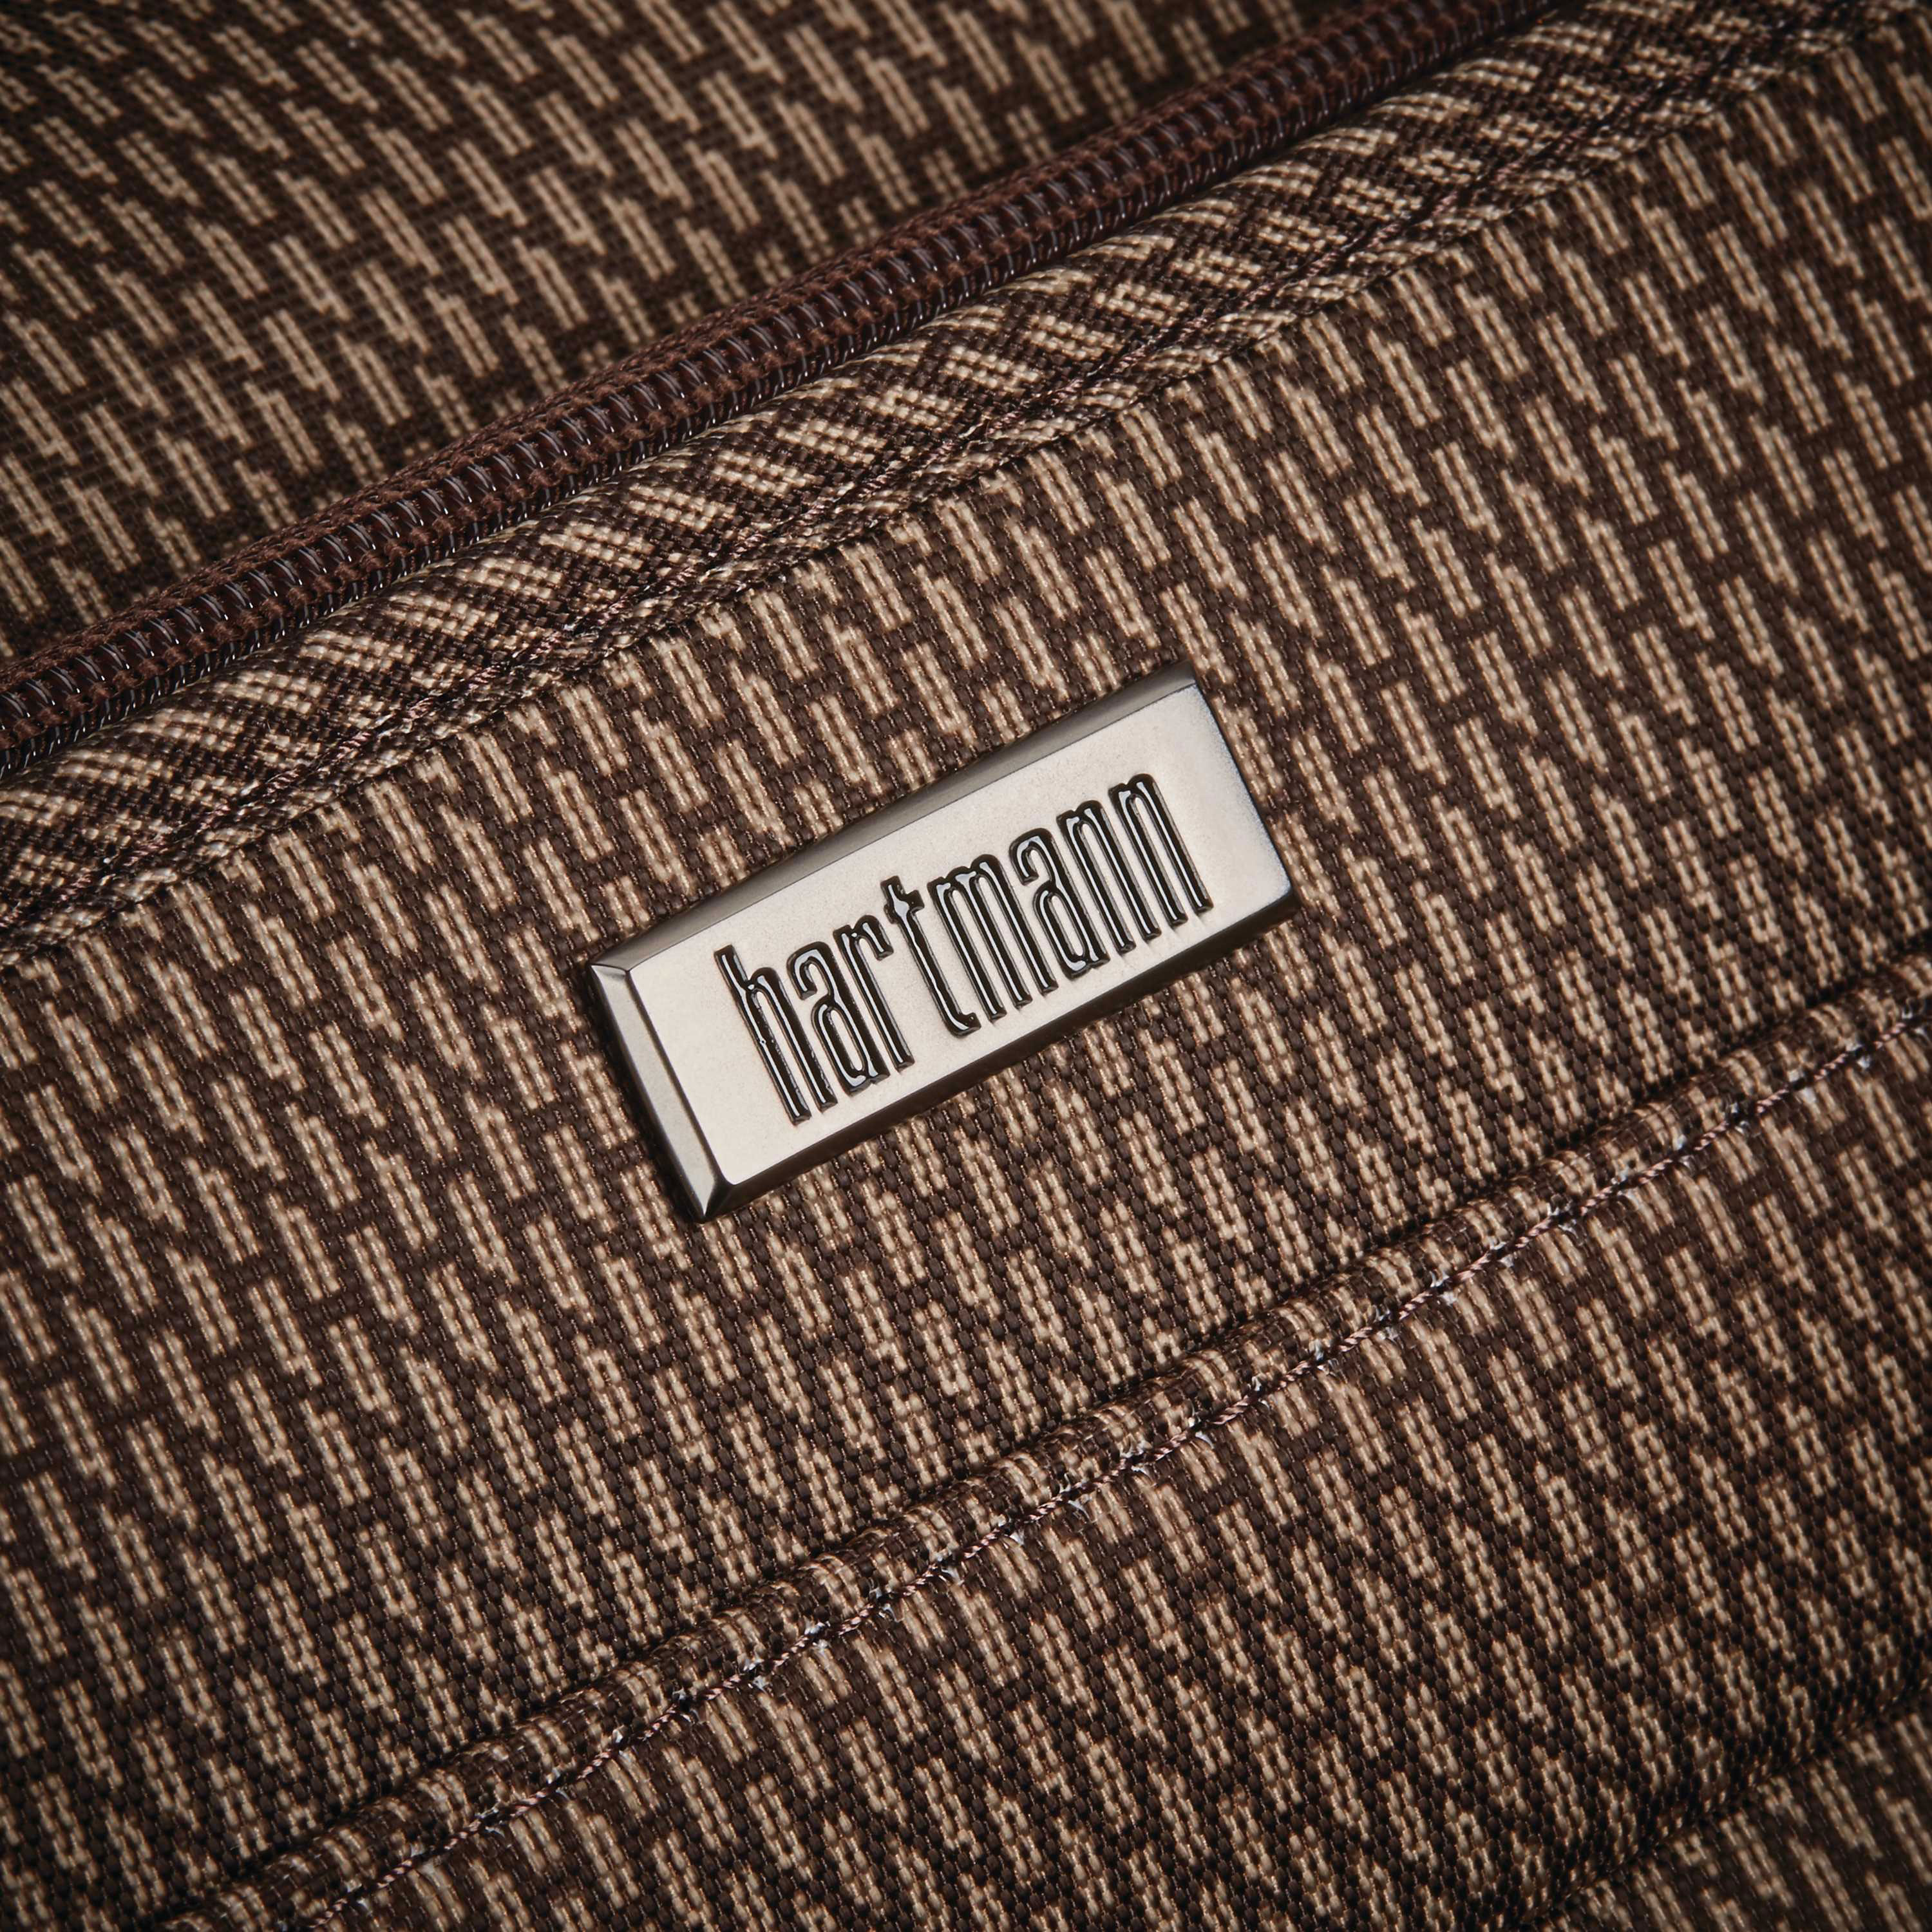 Hartmann Century Carry On Wheeled Garment Bag in the color Mocha Monogram. b6a5773121bc4